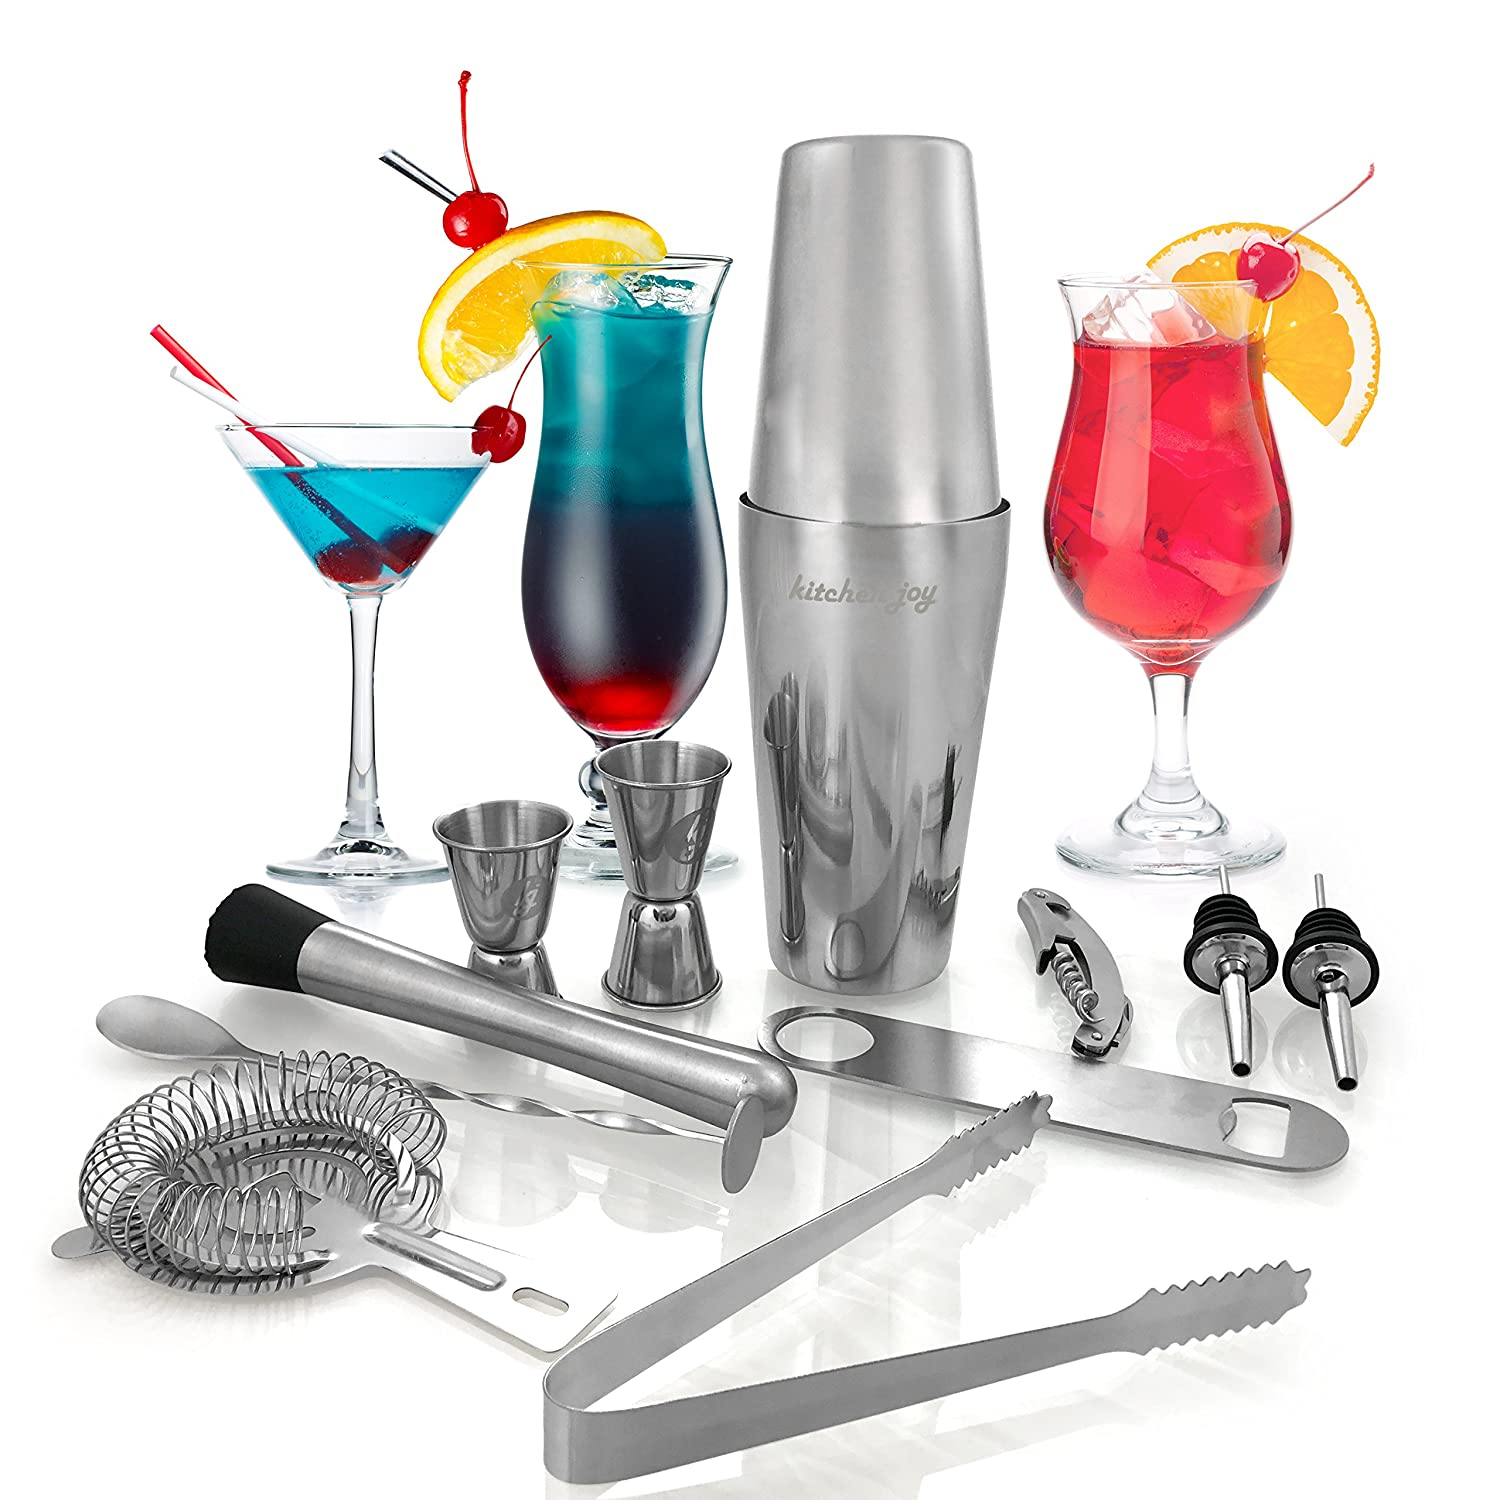 Kitchen Joy Cocktail Shaker Bar Set, Bundle with Jigger and Built-In Strainer 24 Ounce and Cocktails Recipes eBook COMINHKPR94548